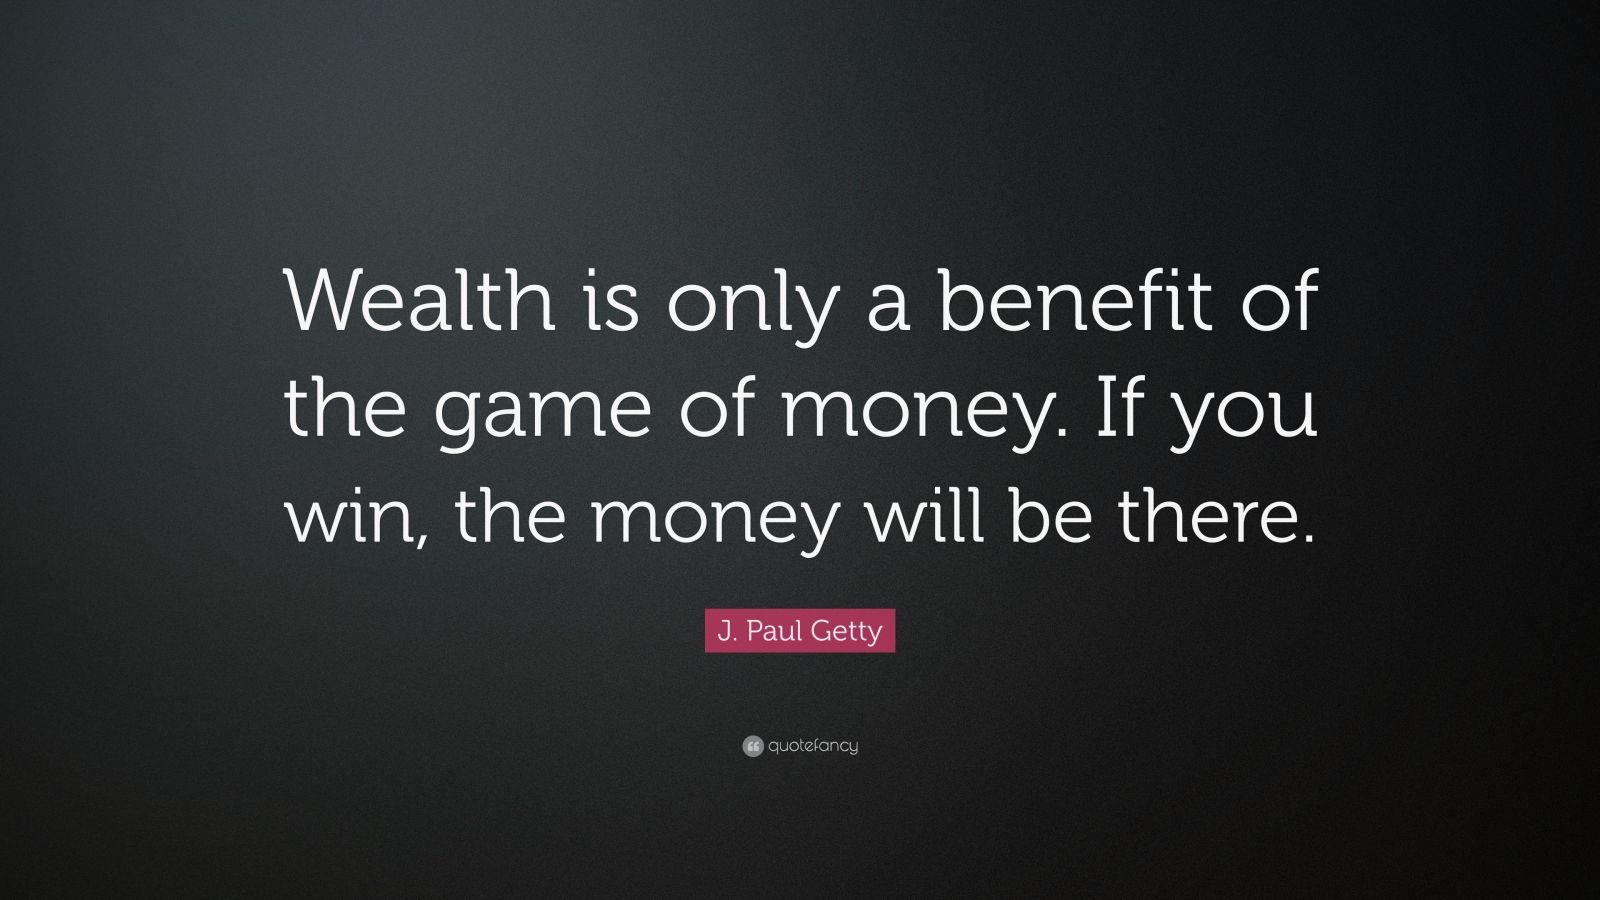 a look at j paul gettys wealth secrets A system is disclosed that provides a goal based learning system utilizing a rule based expert training system to provide a cognitive educational experience.